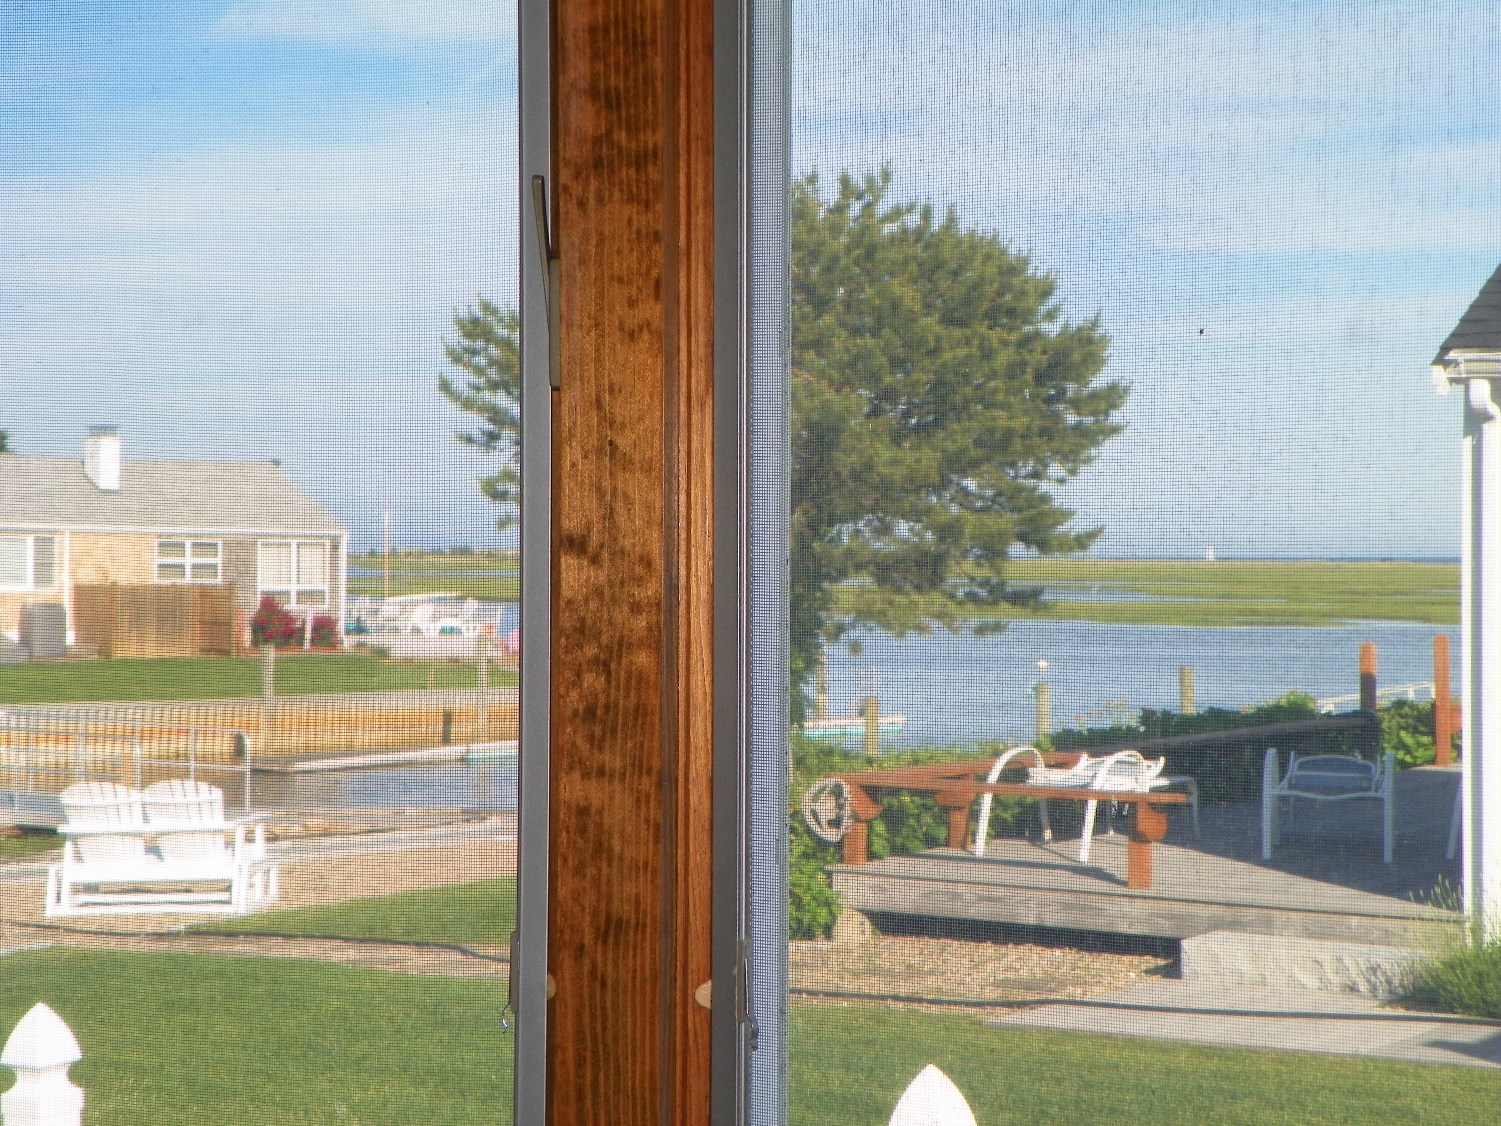 View from 6 Captain Keavy Way, West Dennis, MA for sale by Cranberry Real Estate 508-394-1700